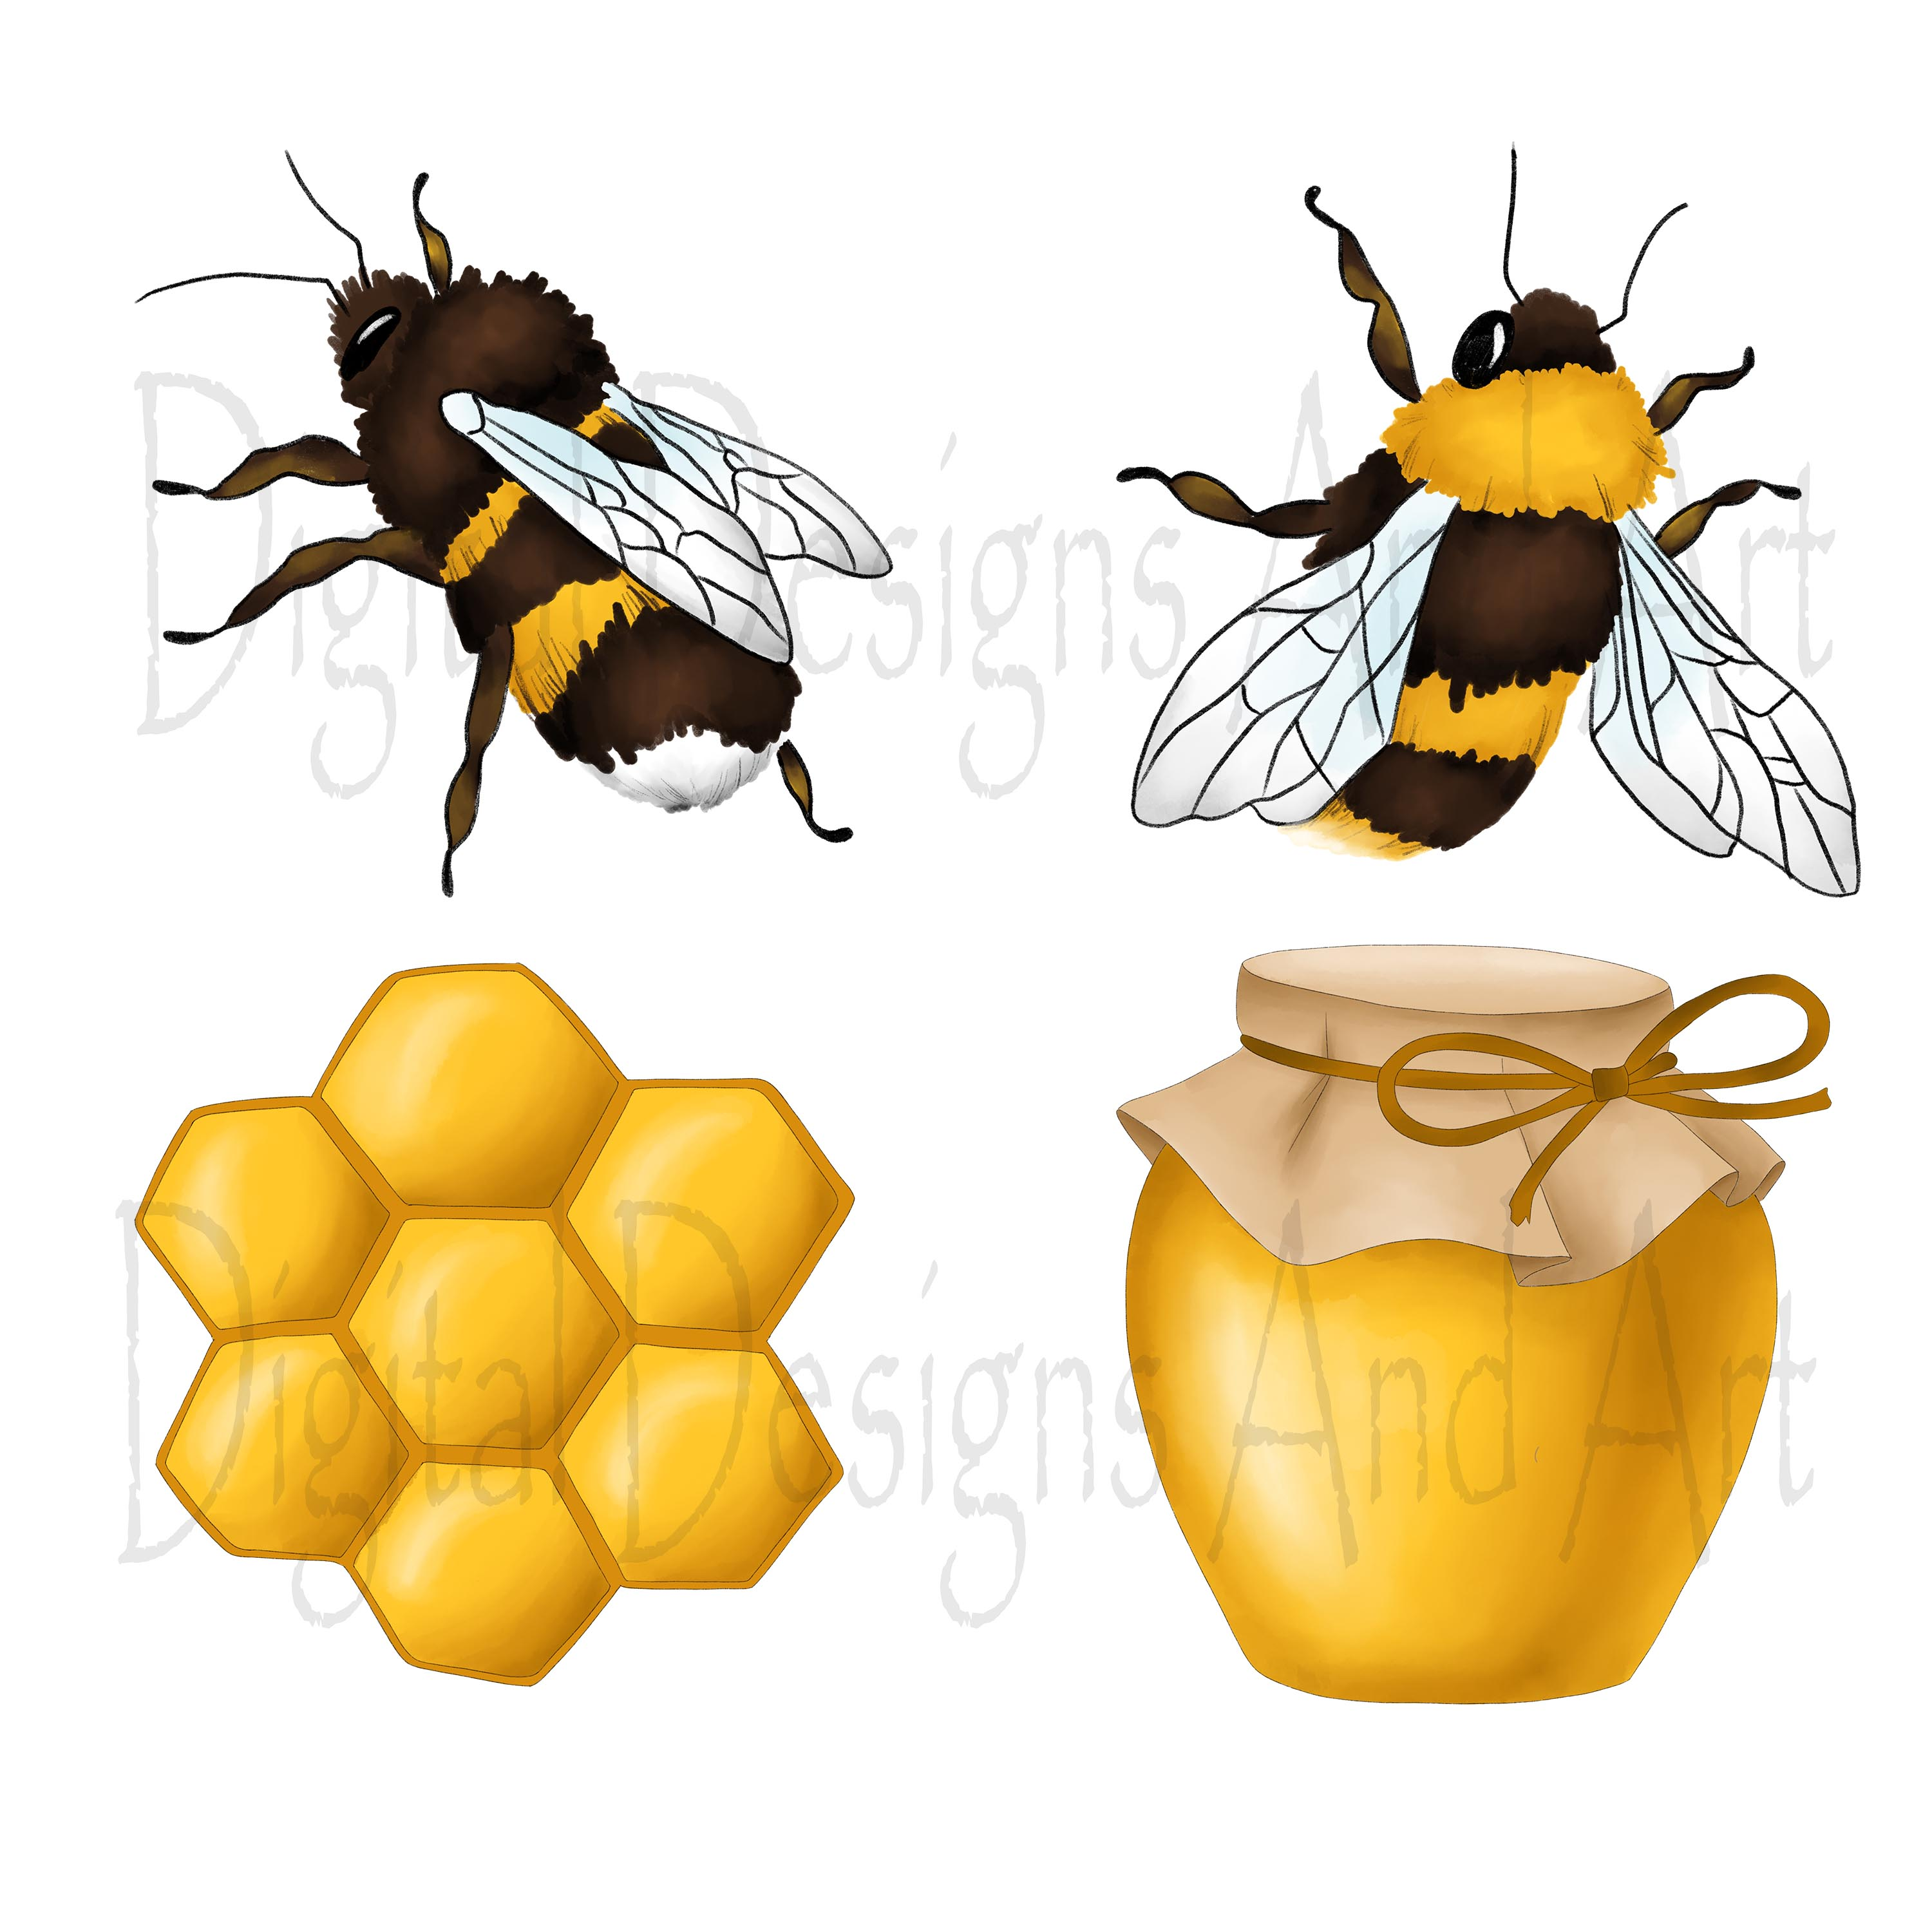 Honey bee clipart example image 2